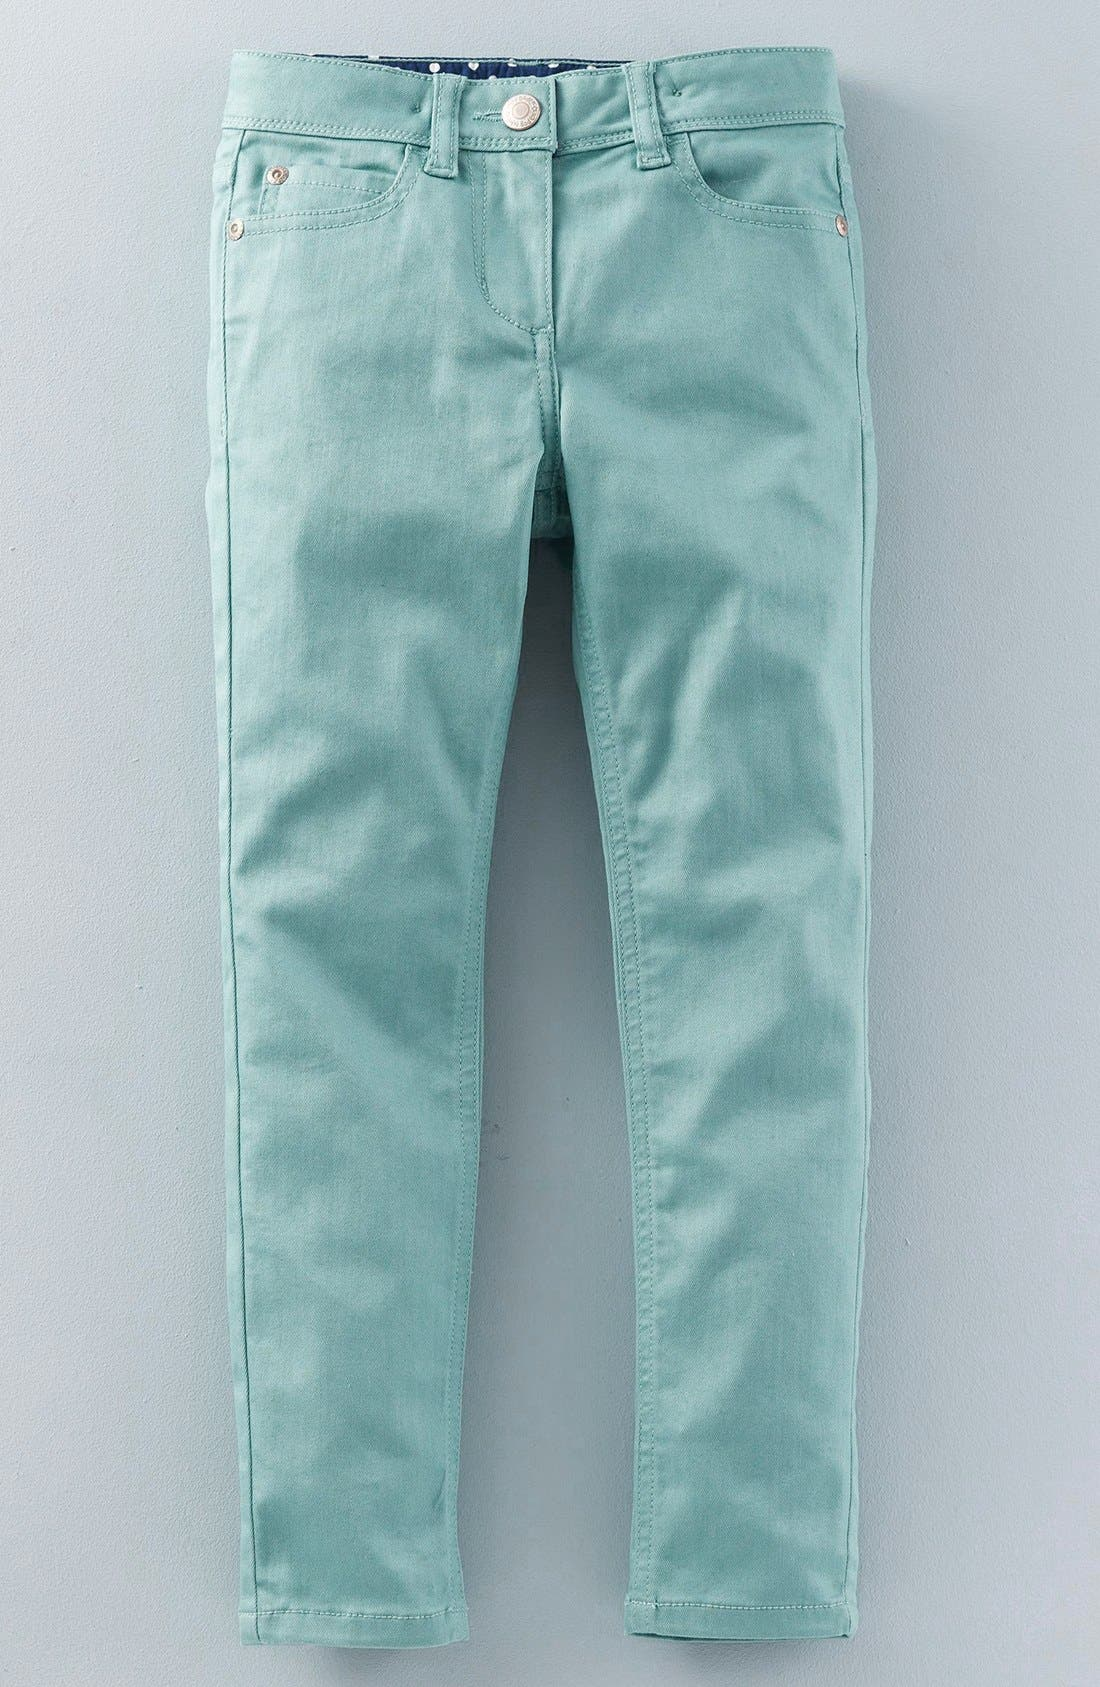 Main Image - Mini Boden Super Skinny Fit Jeans (Toddler Girls, Little Girls & Big Girls)